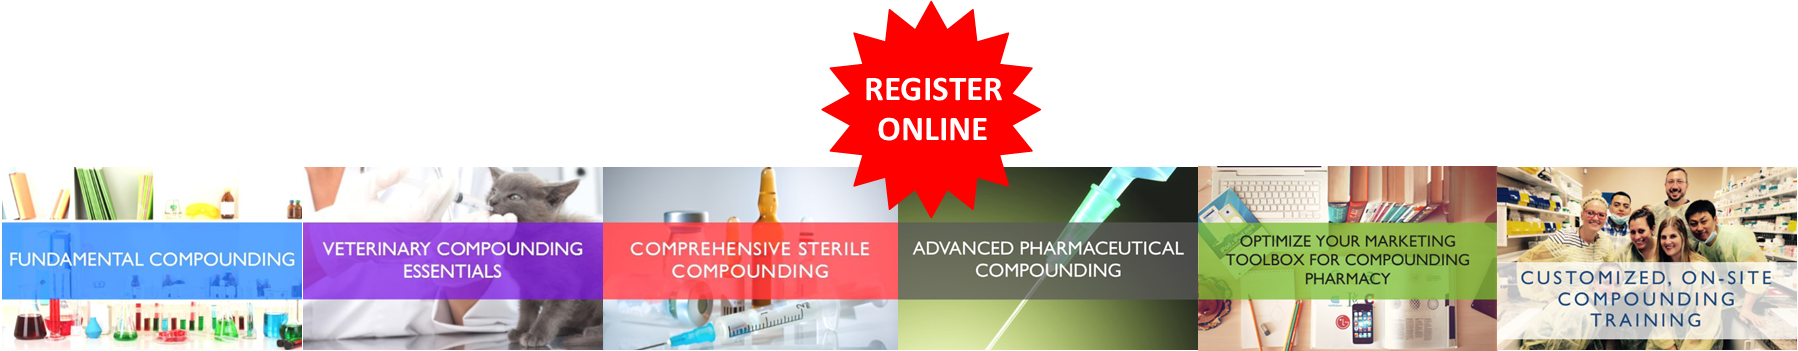 2020 Compounding Training Courses Header